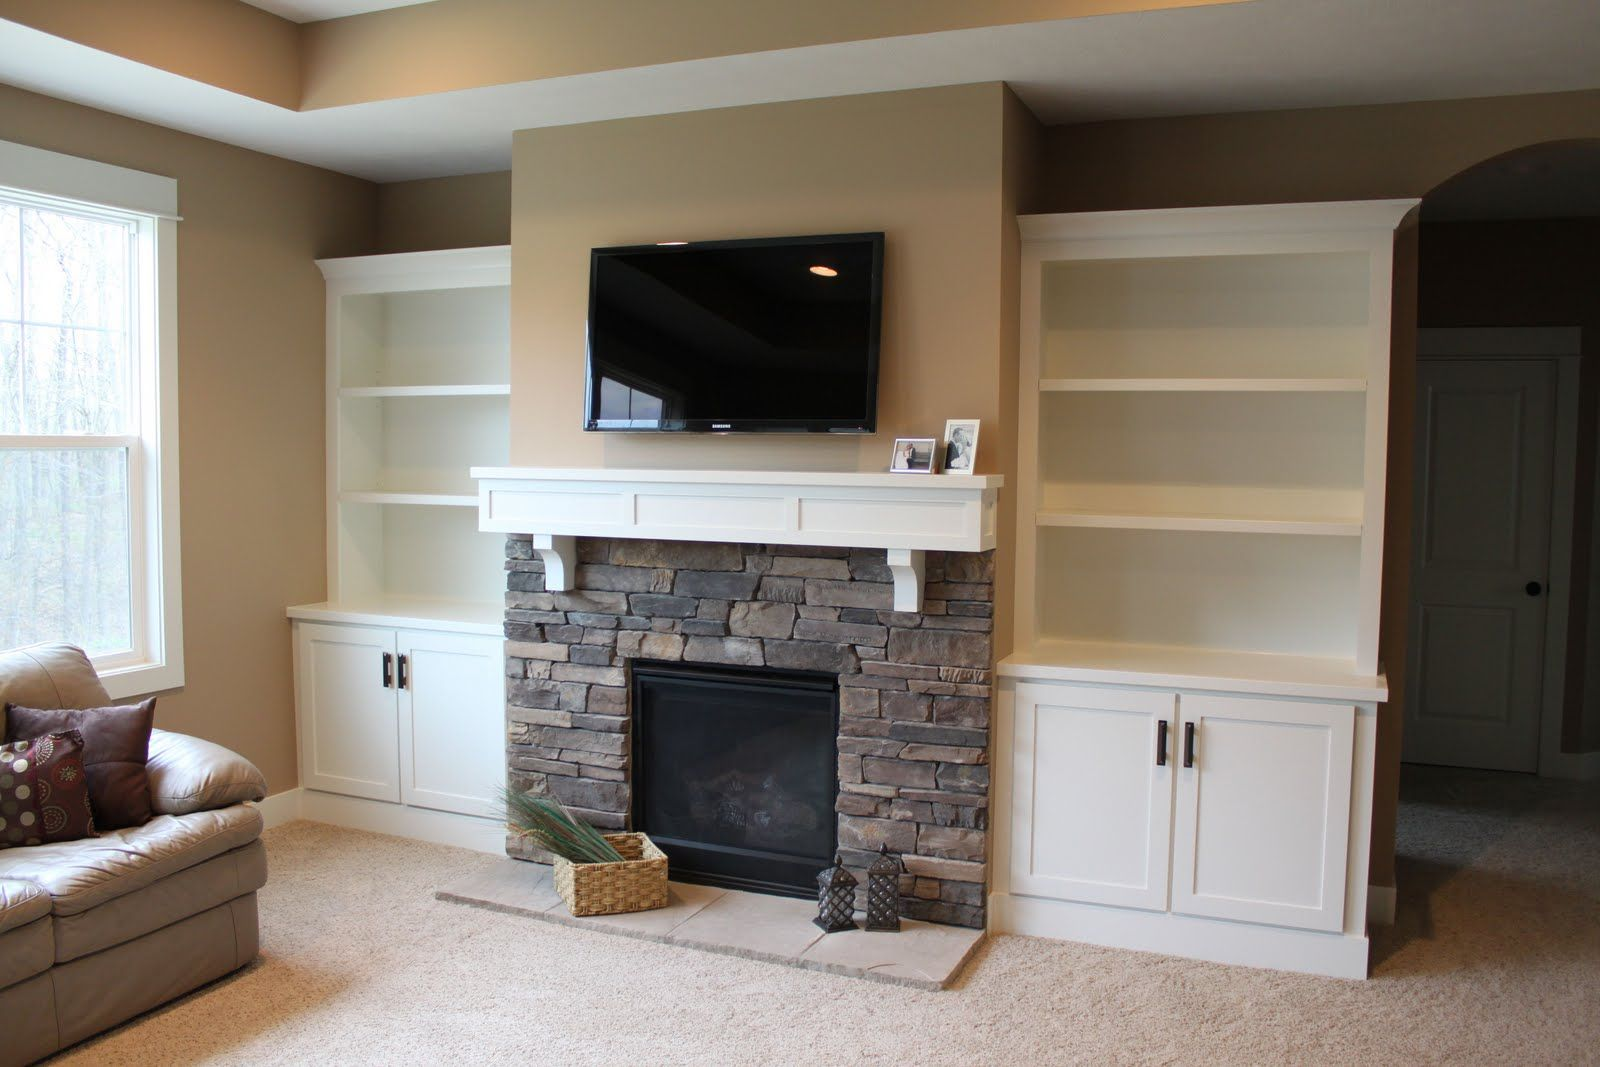 Built In Shelves Surrounding Fireplace Cabinets And Shelving Their Fieldstone